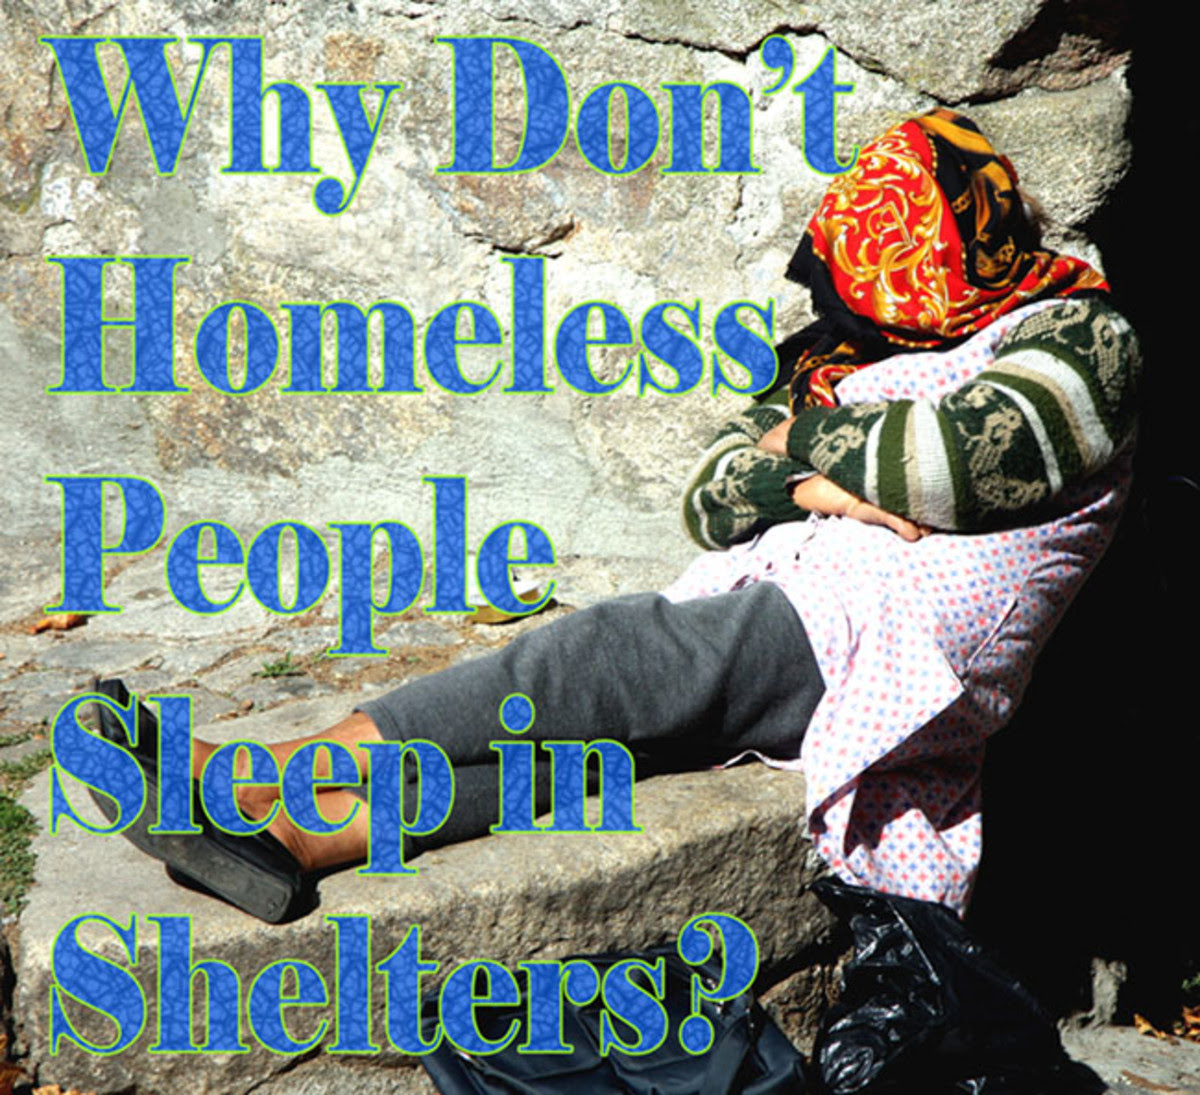 Why don't homeless people all just sleep in shelters?